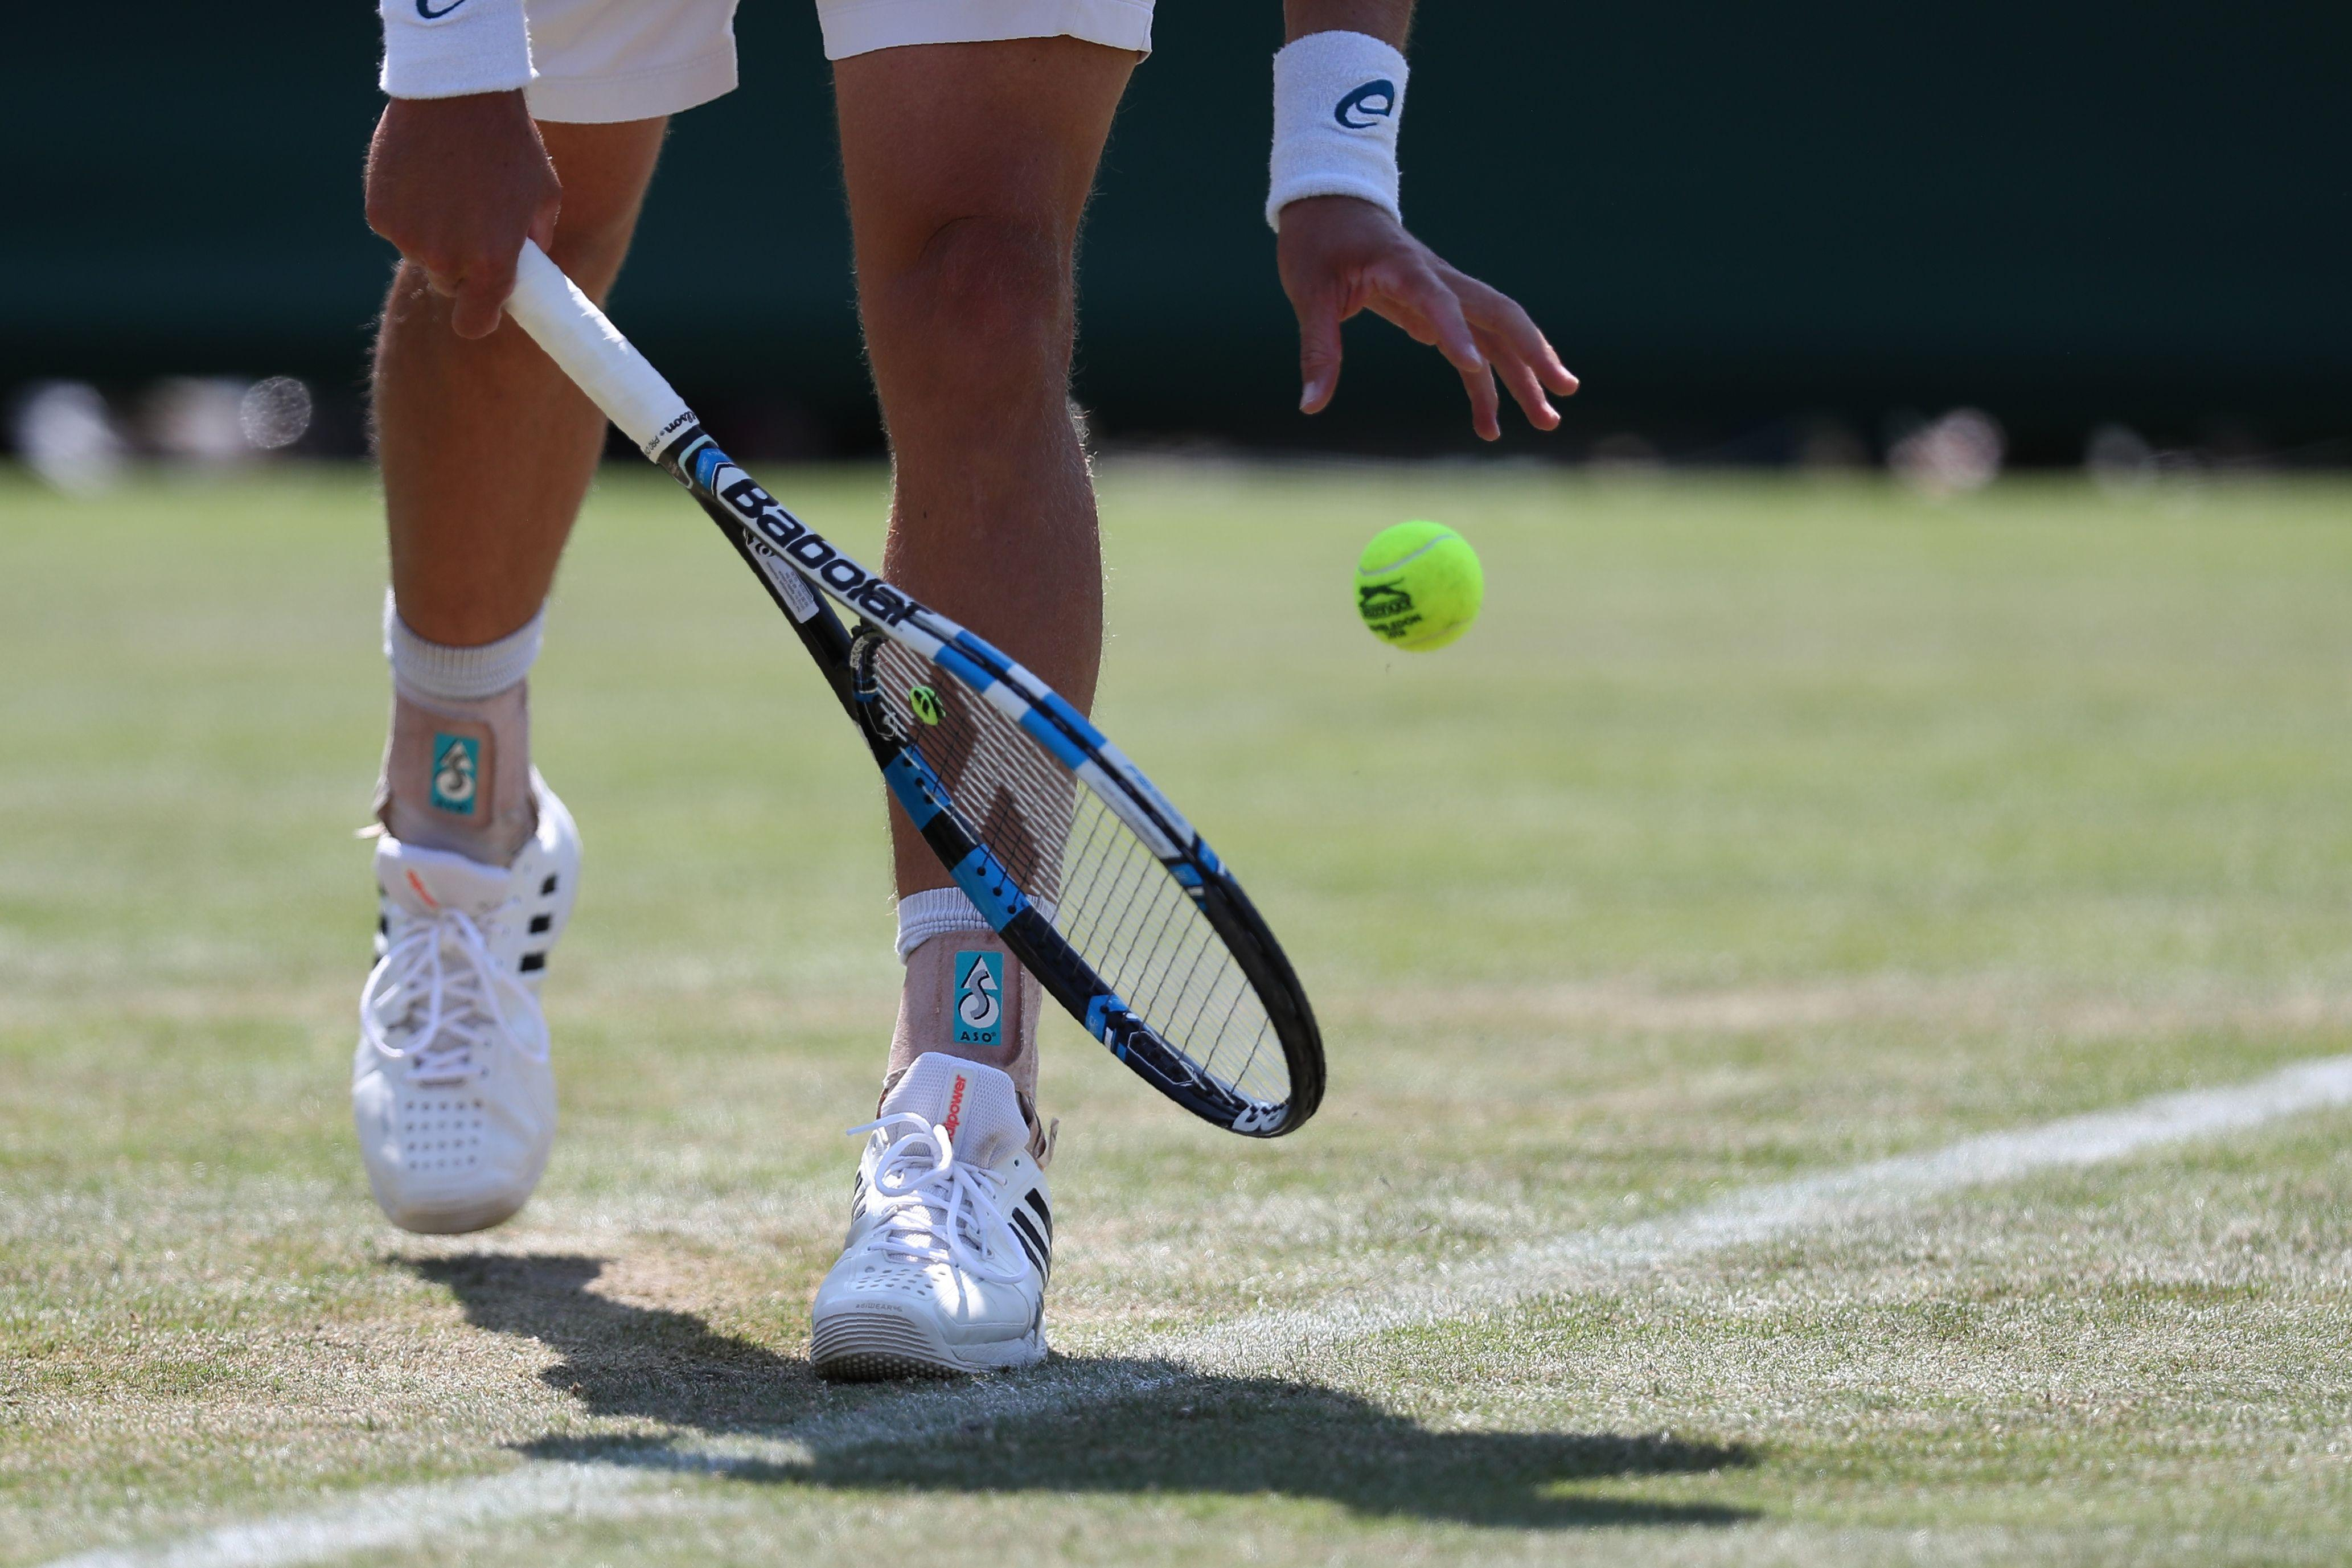 Is there a particular reason why tennis players bounce the ball before serving?